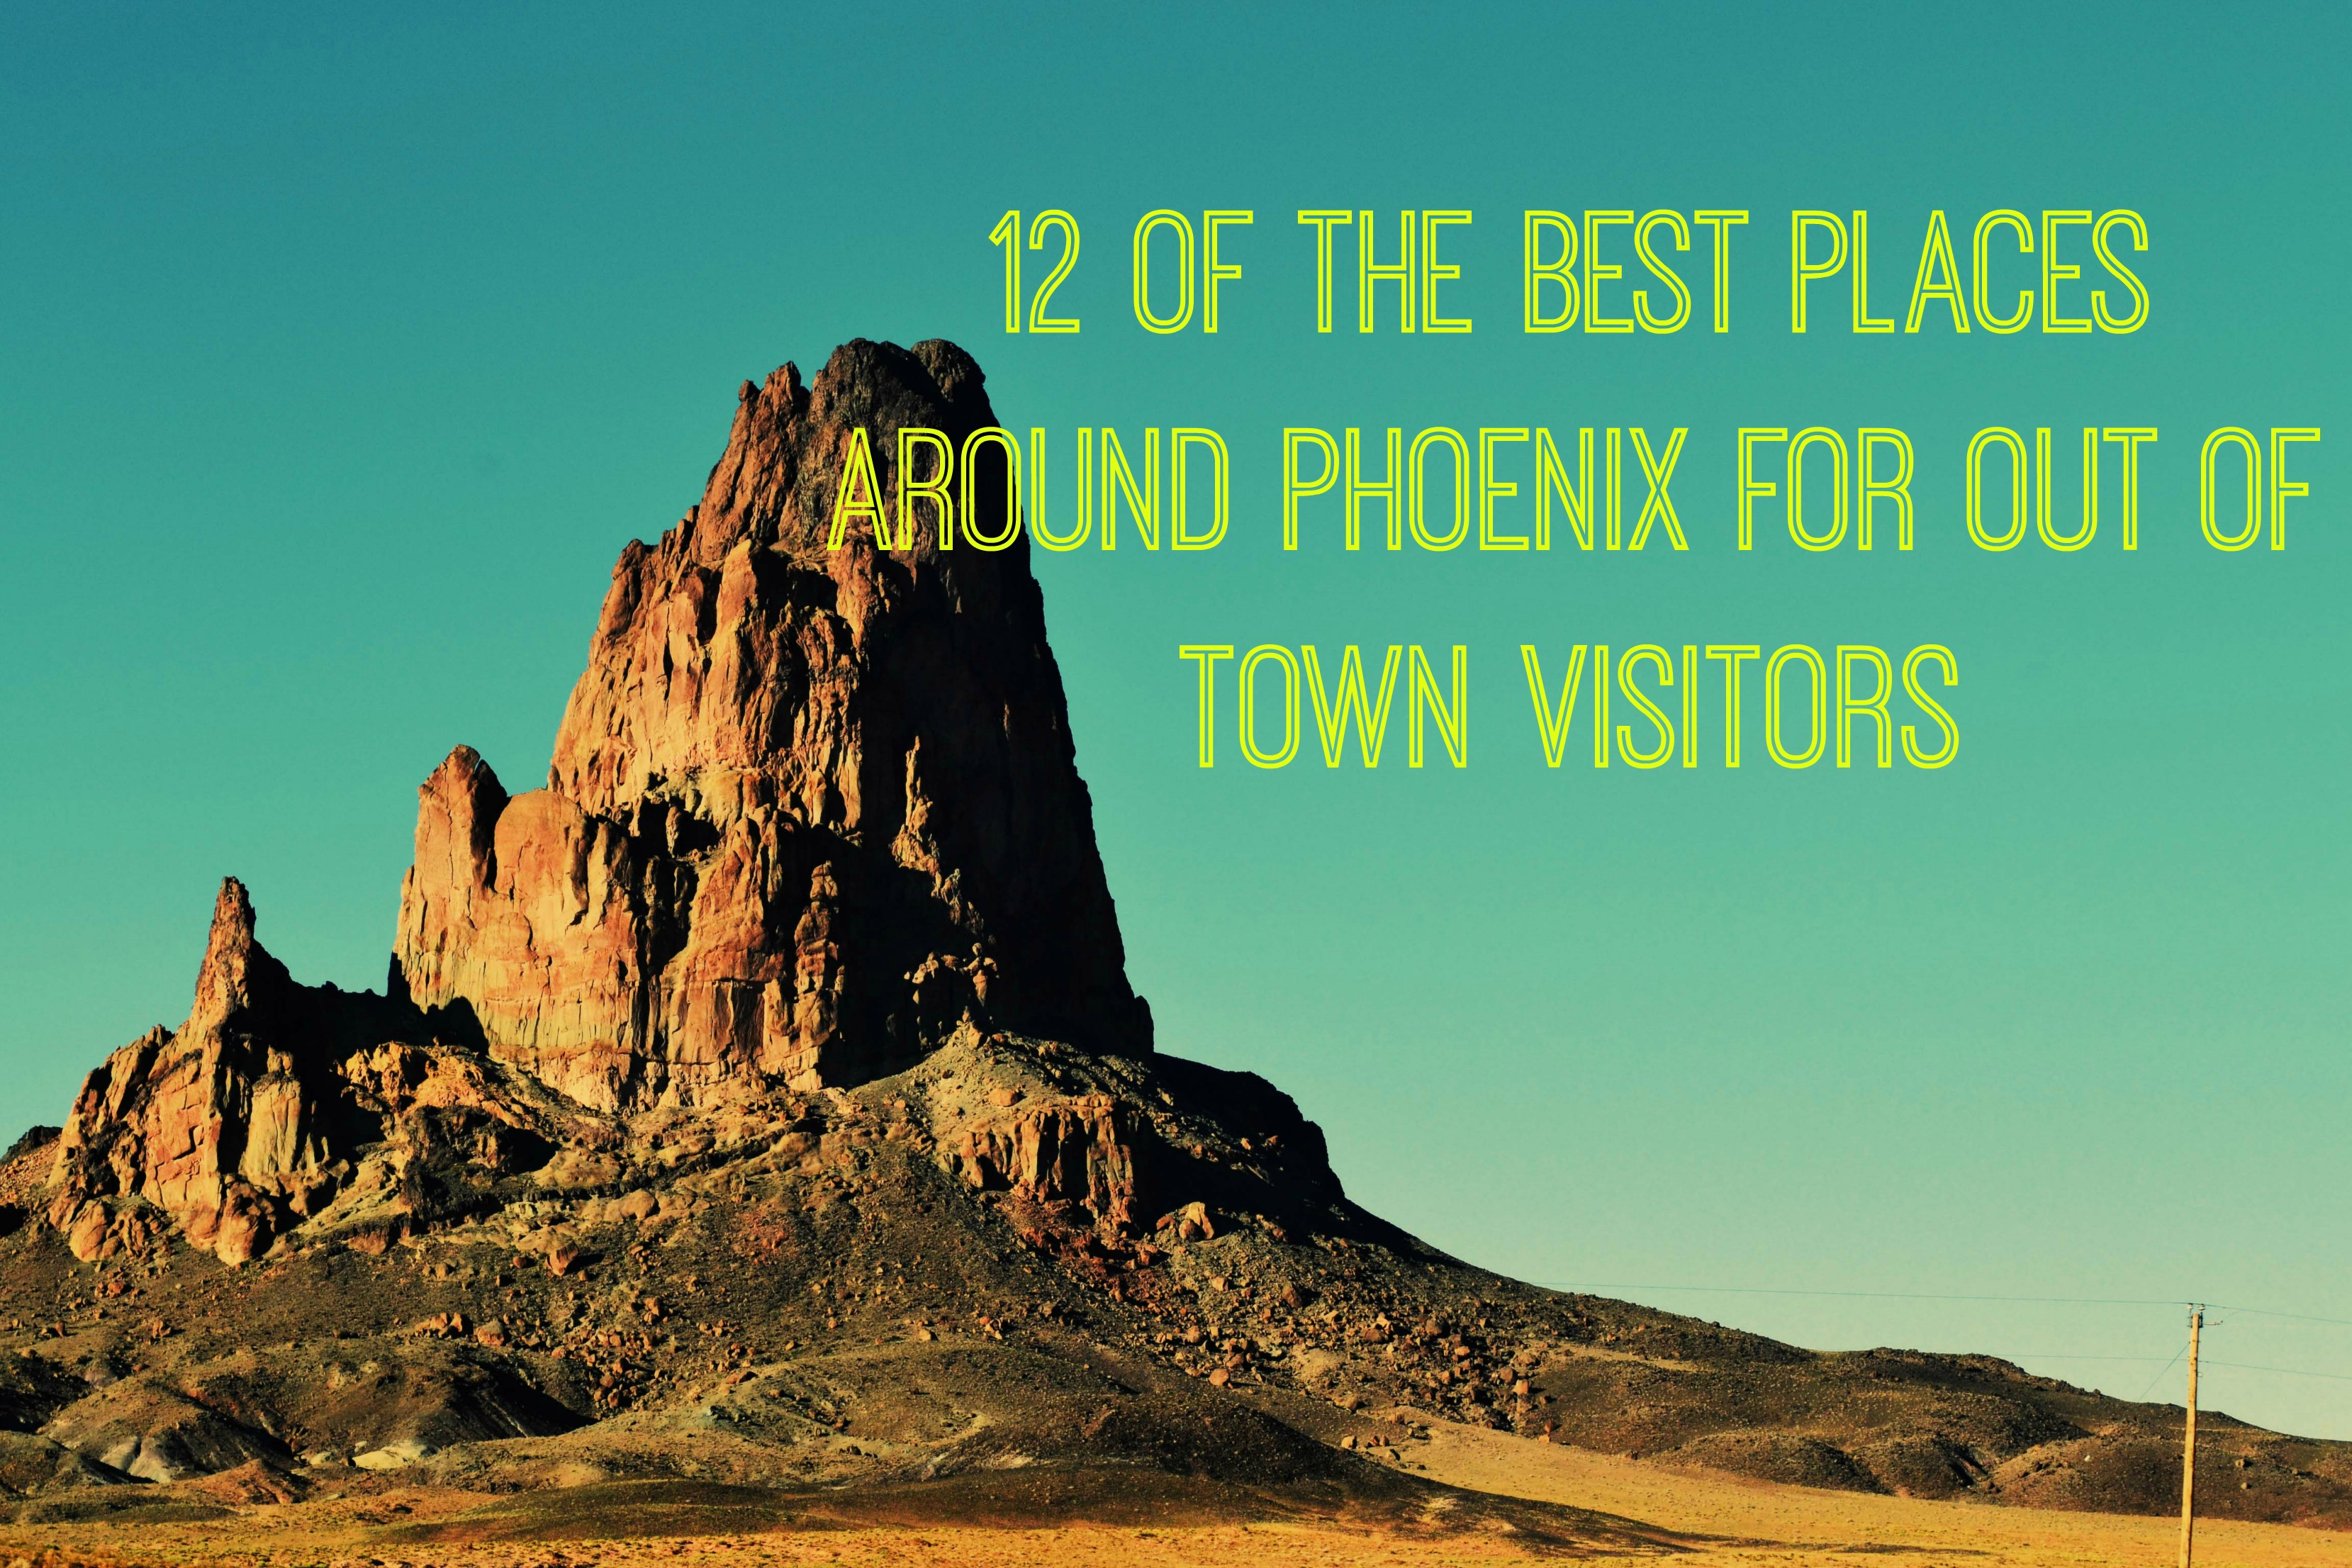 12 of the Best Places Around Phoenix for Out of Town